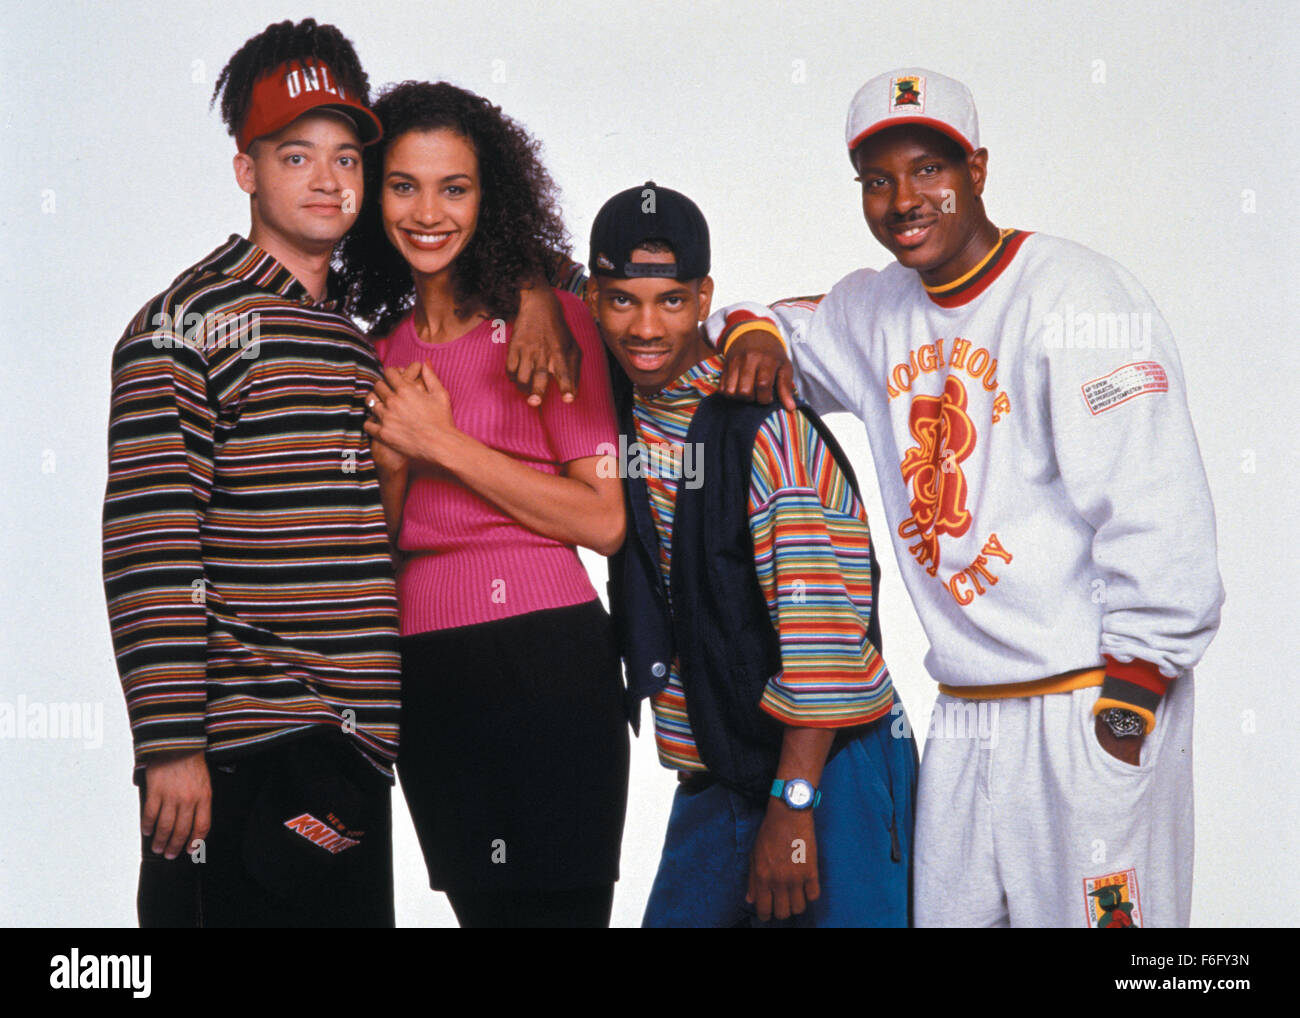 RELEASE DATE: Jan 12, 1994. MOVIE TITLE: House Party 3 ...